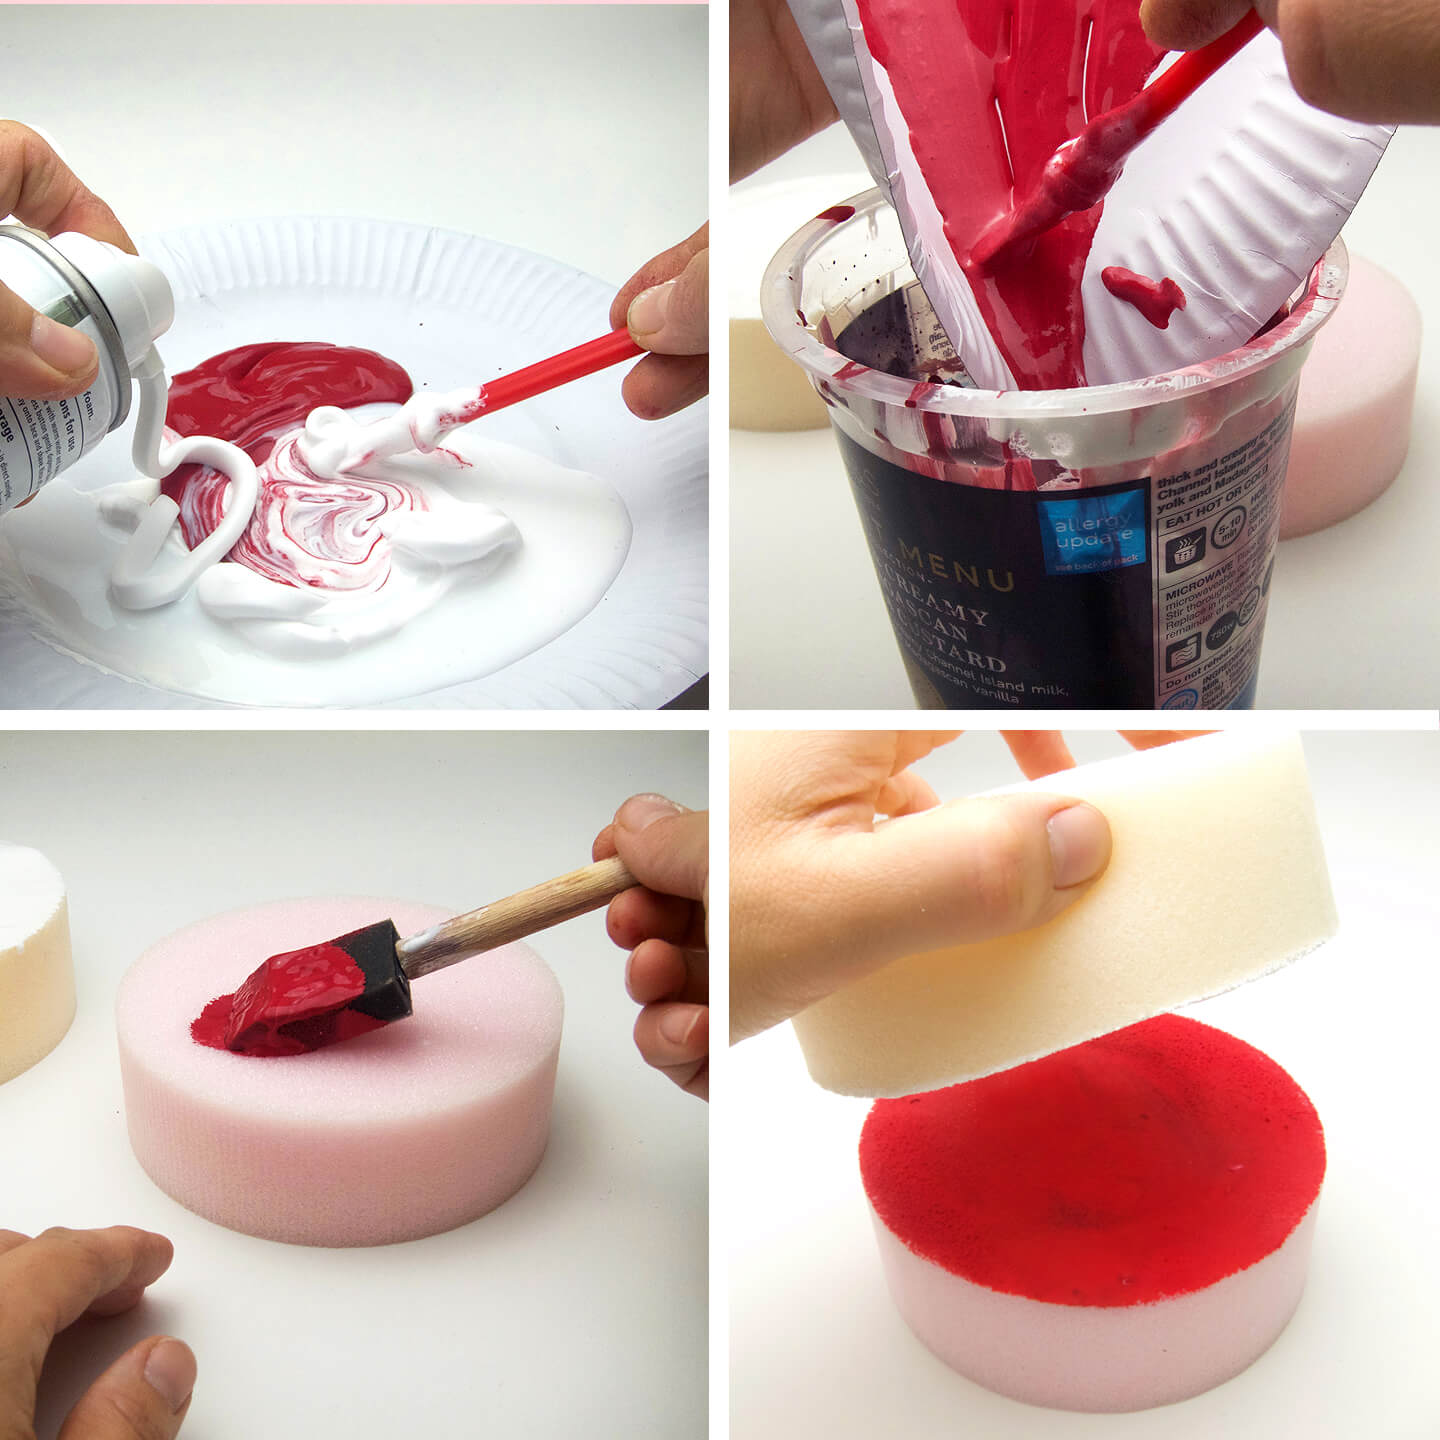 Make a filling for the pretend cake.